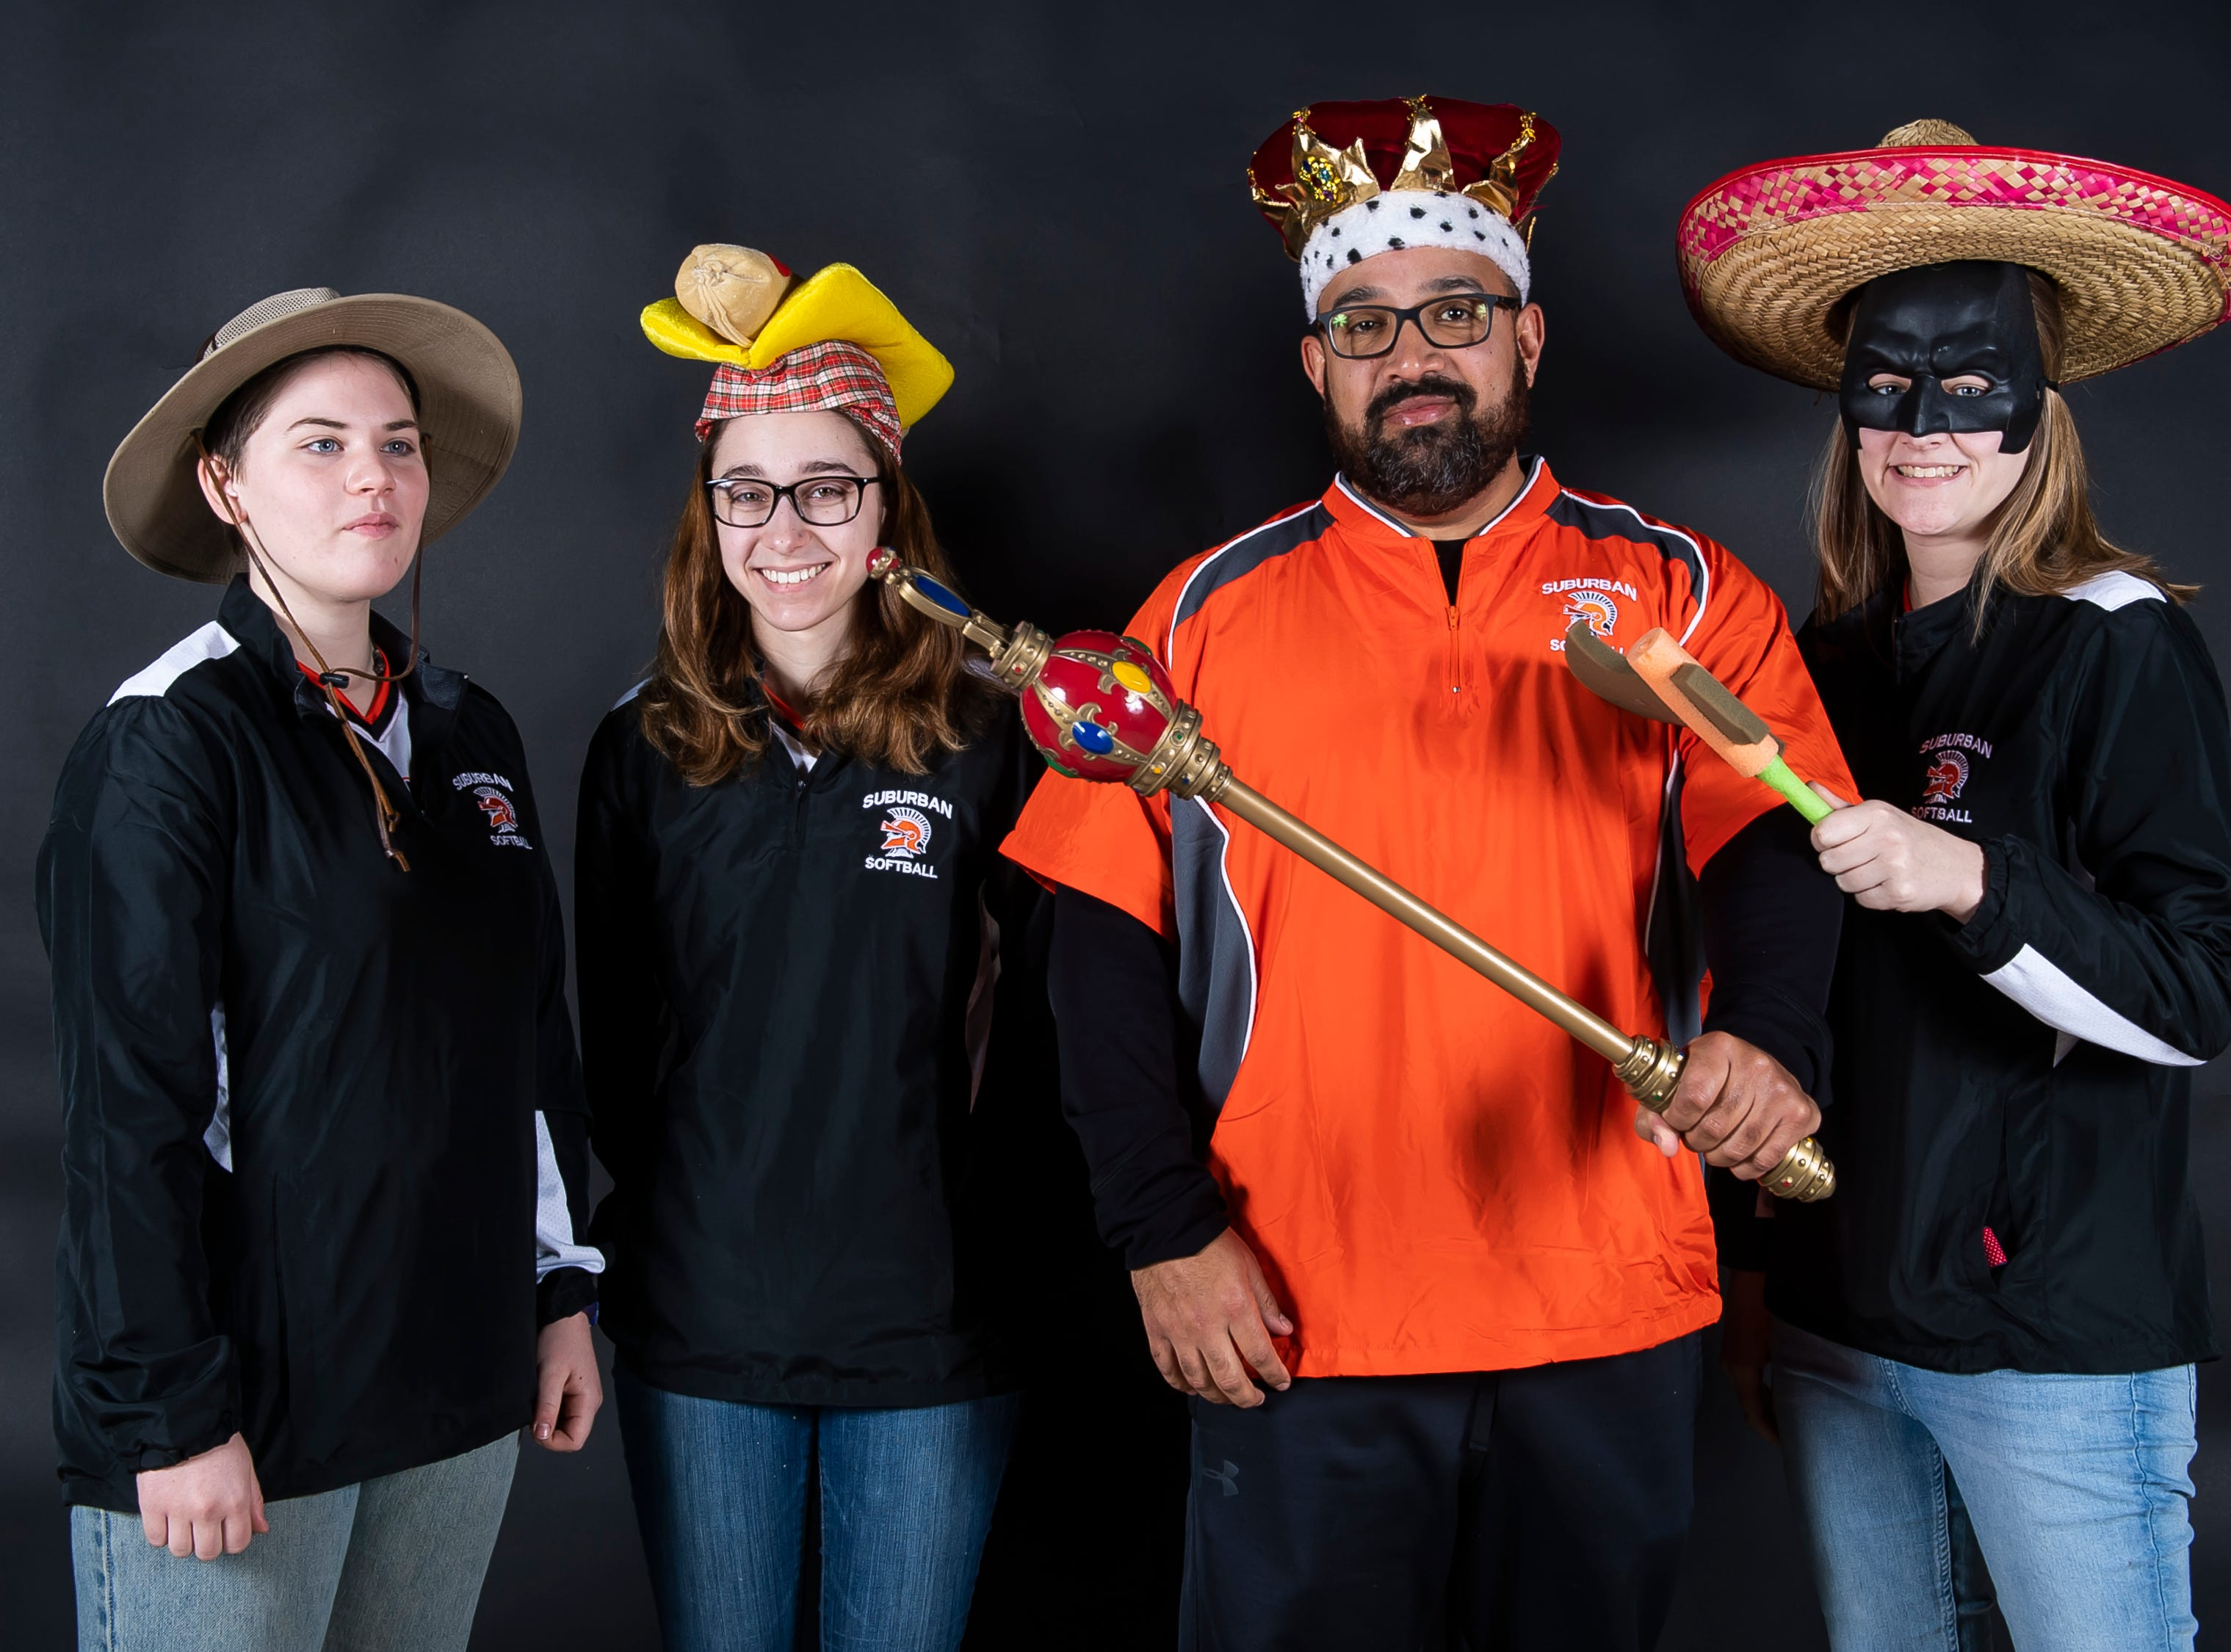 The York Suburban softball team pose with coach Larry Dalton in the GameTimePA photo booth during spring sports media day in York Sunday, March 10, 2019.